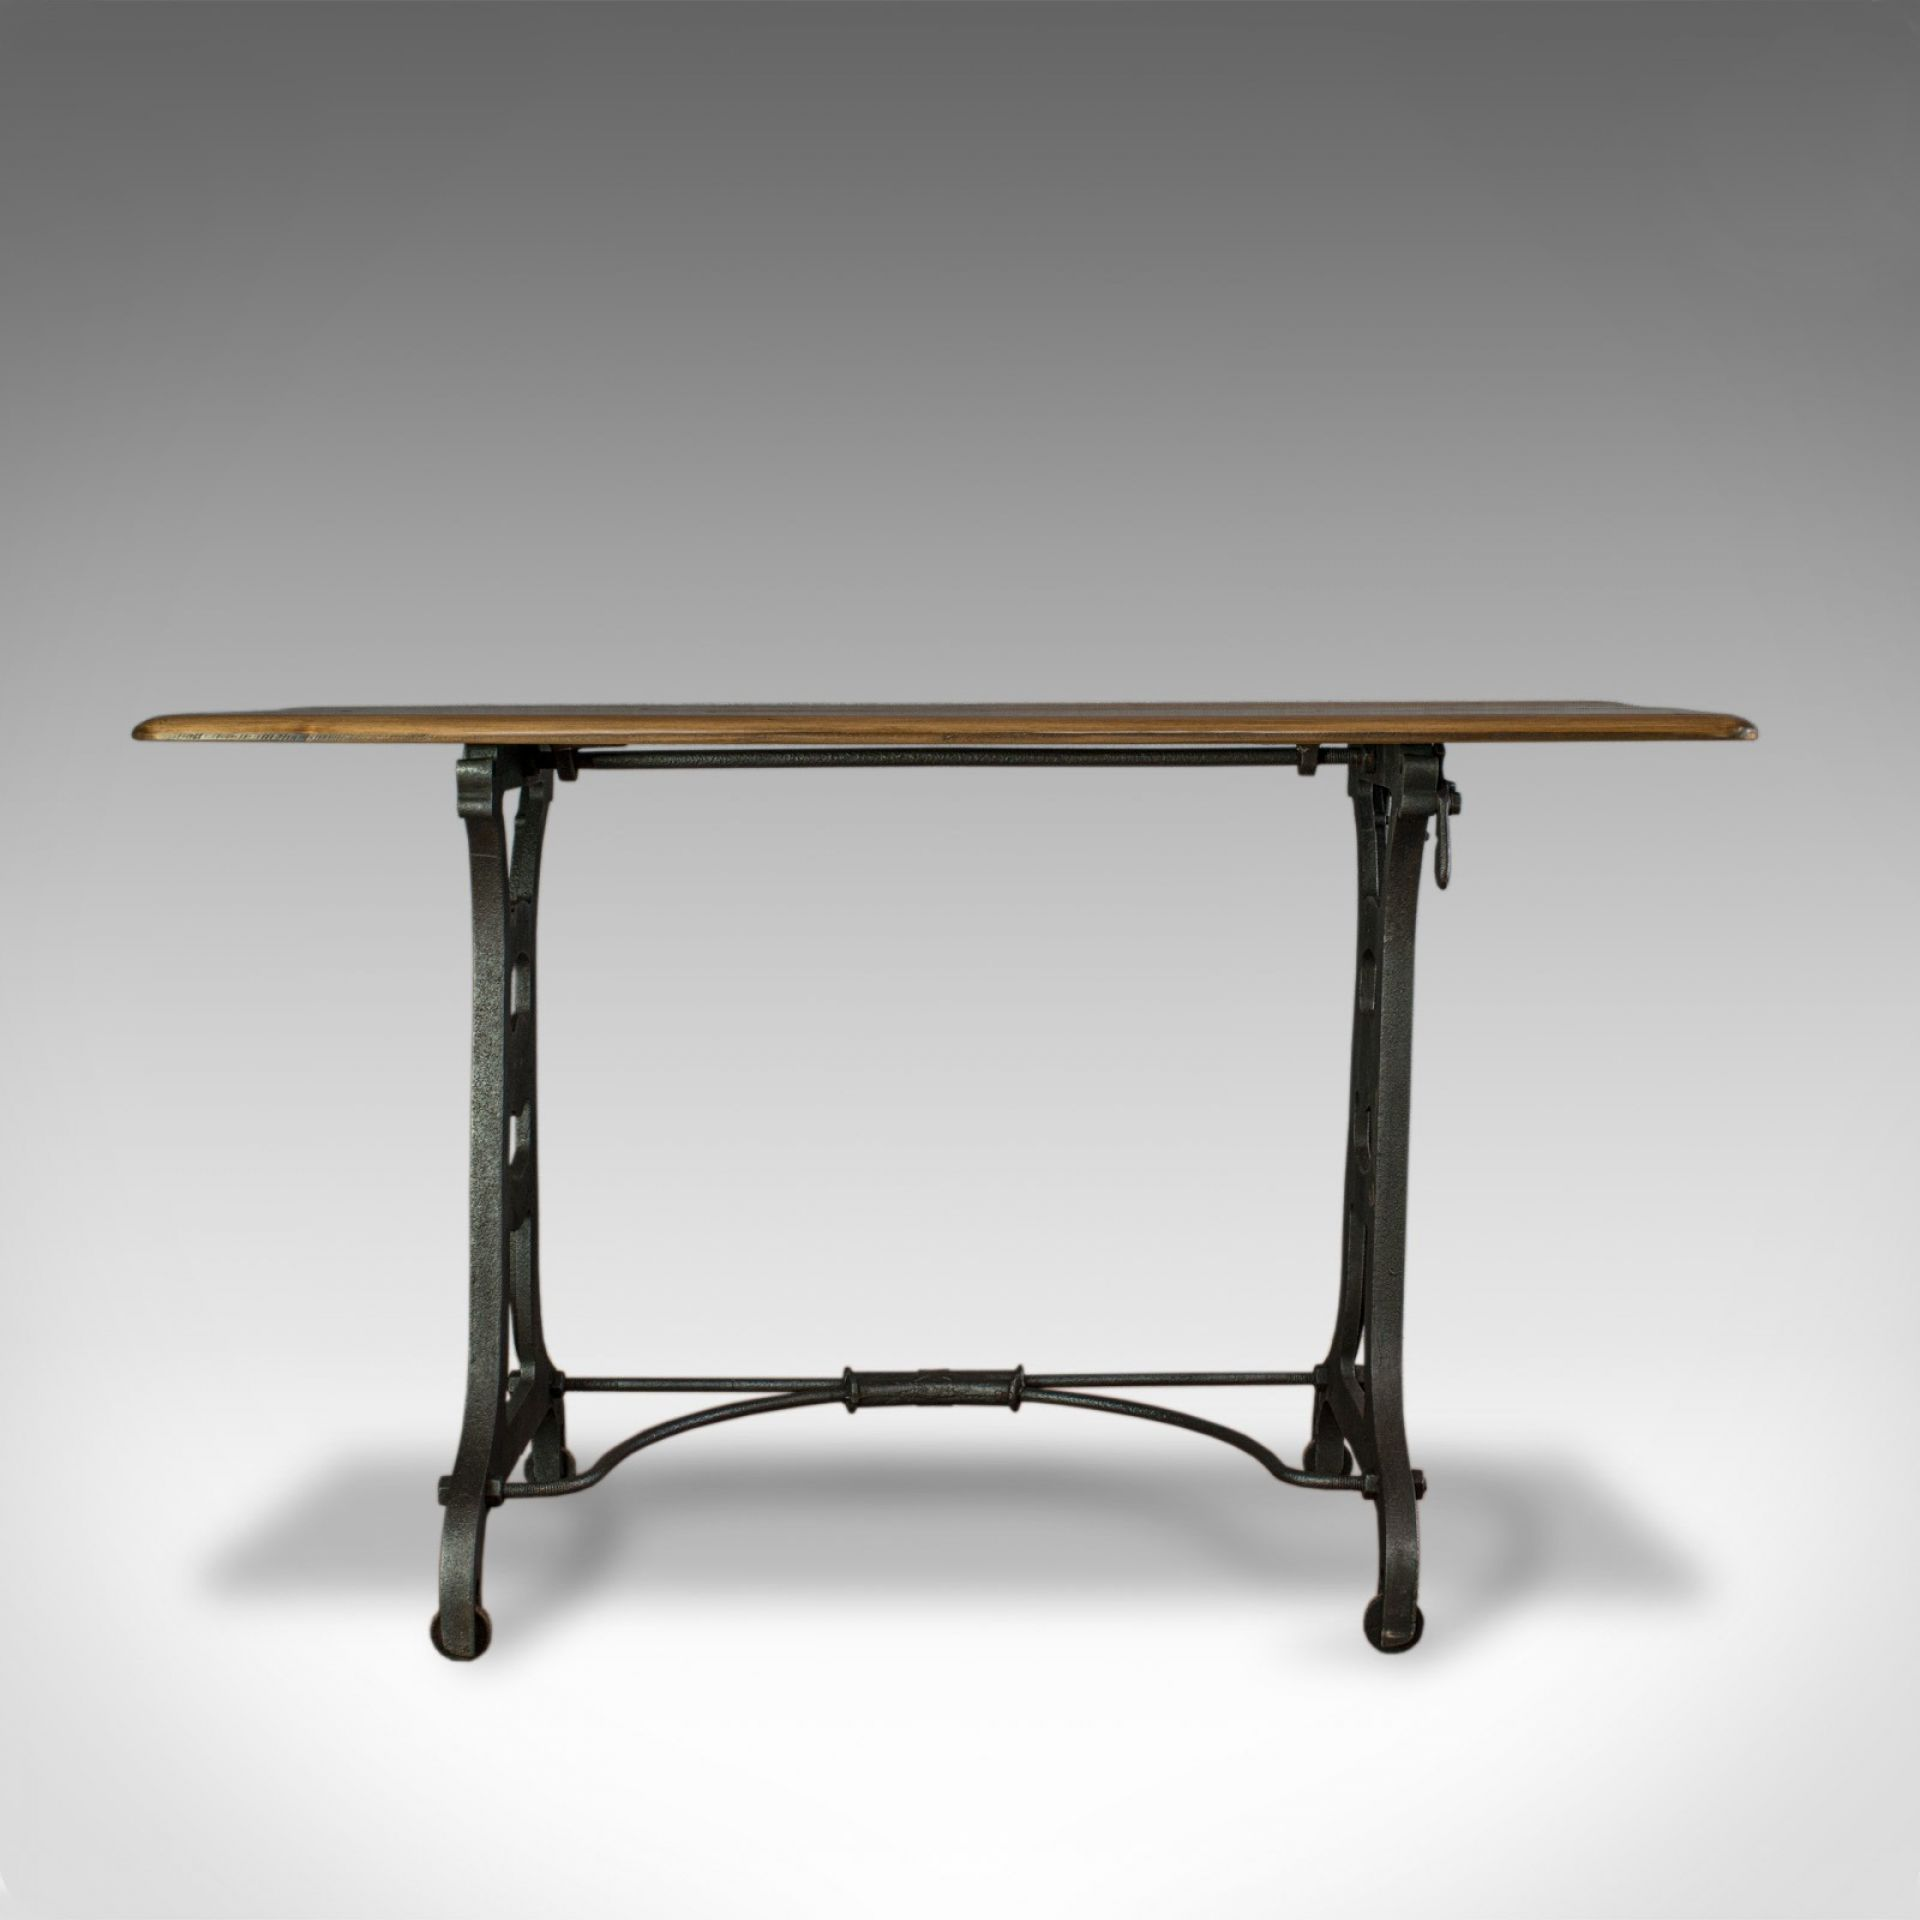 Antique Orangery Table, English, Industrial, Machinist, Victorian, Side C.1900